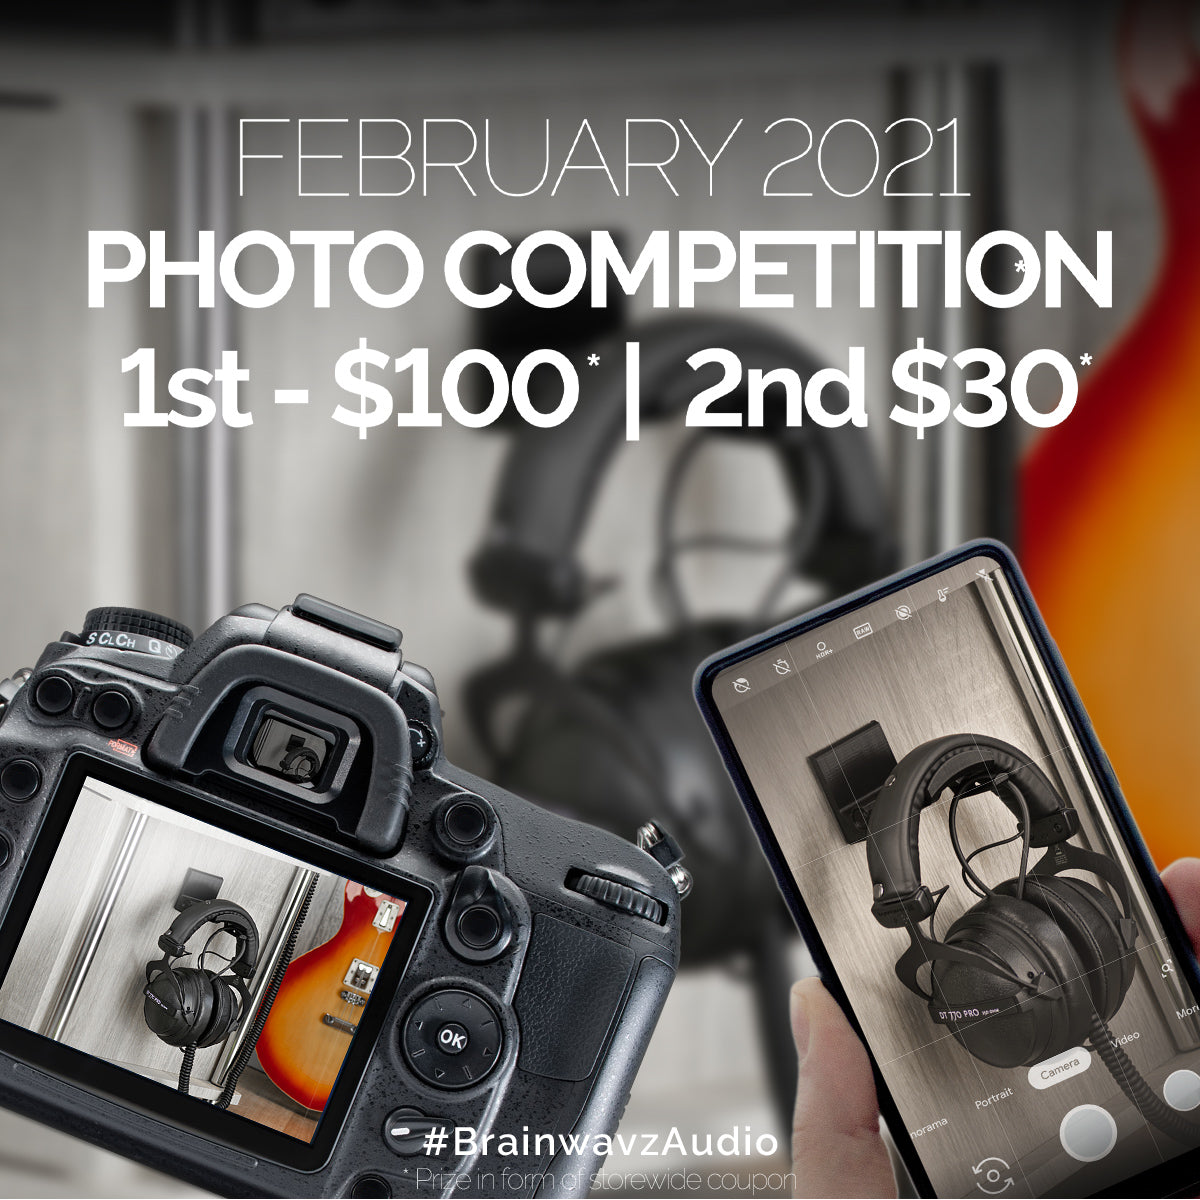 Feb photo comp